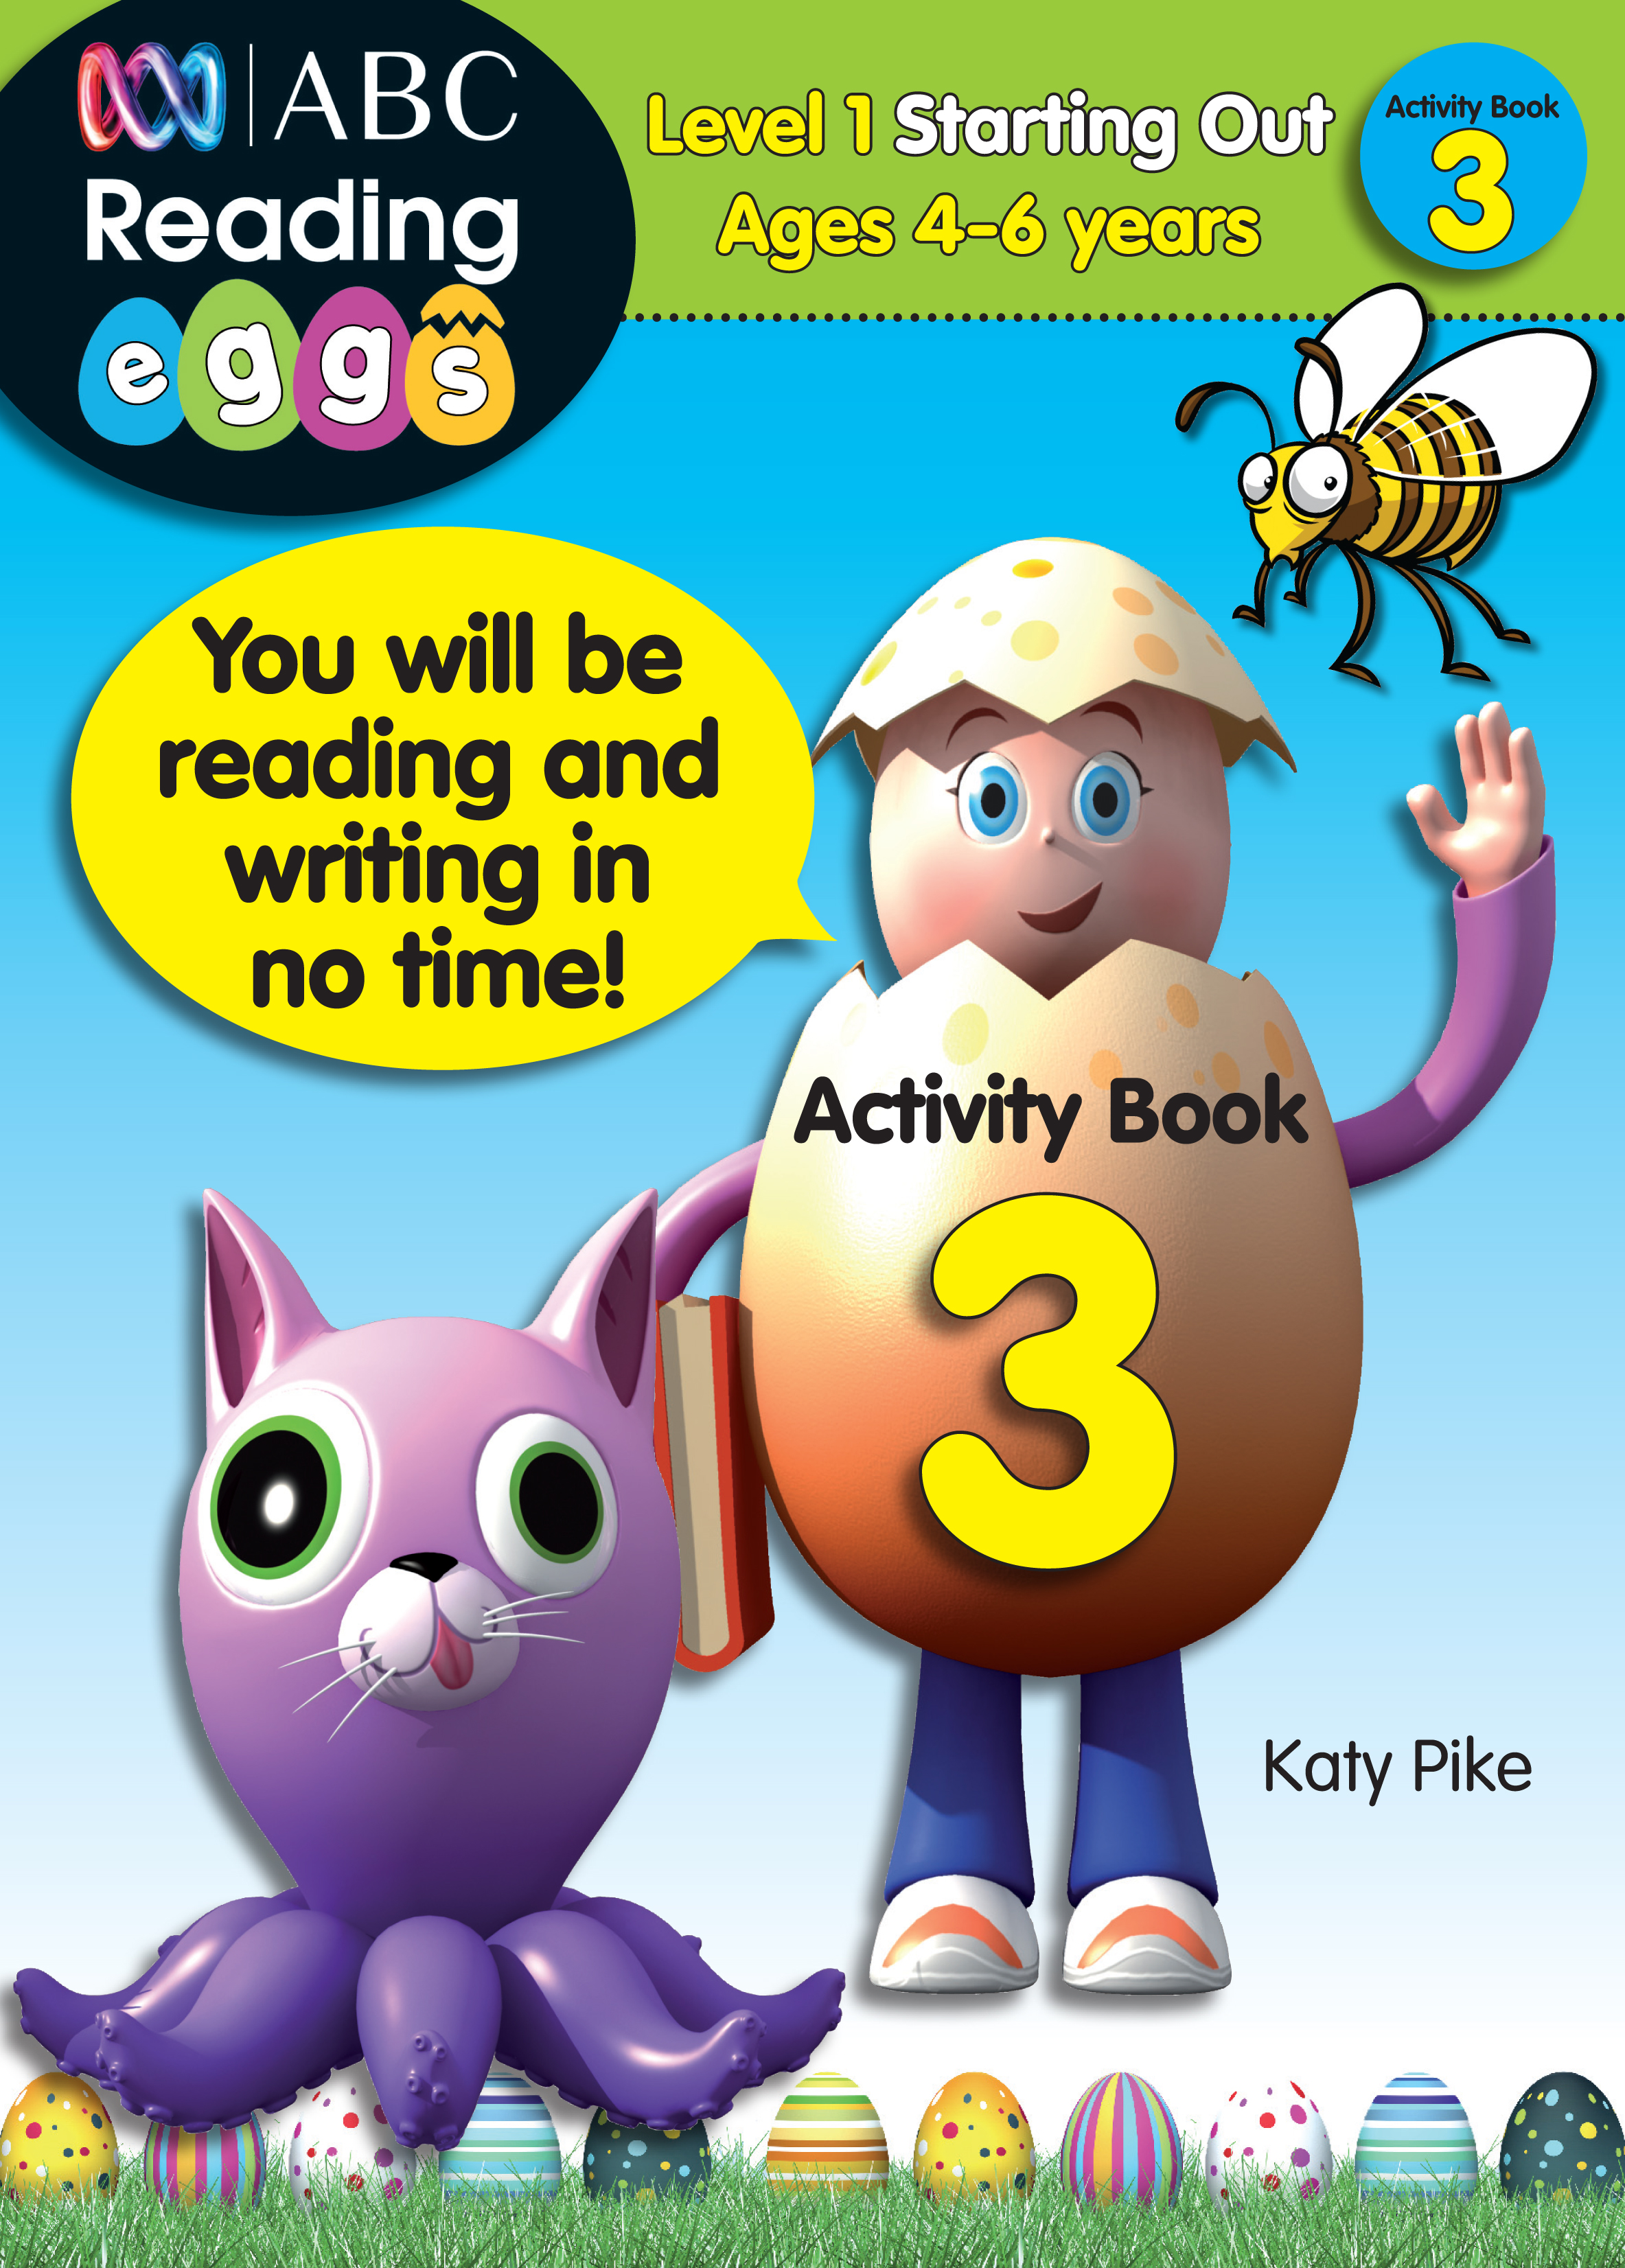 ABC Reading Eggs Level 1 Starting Out Activity Book 3 Ages 4-6